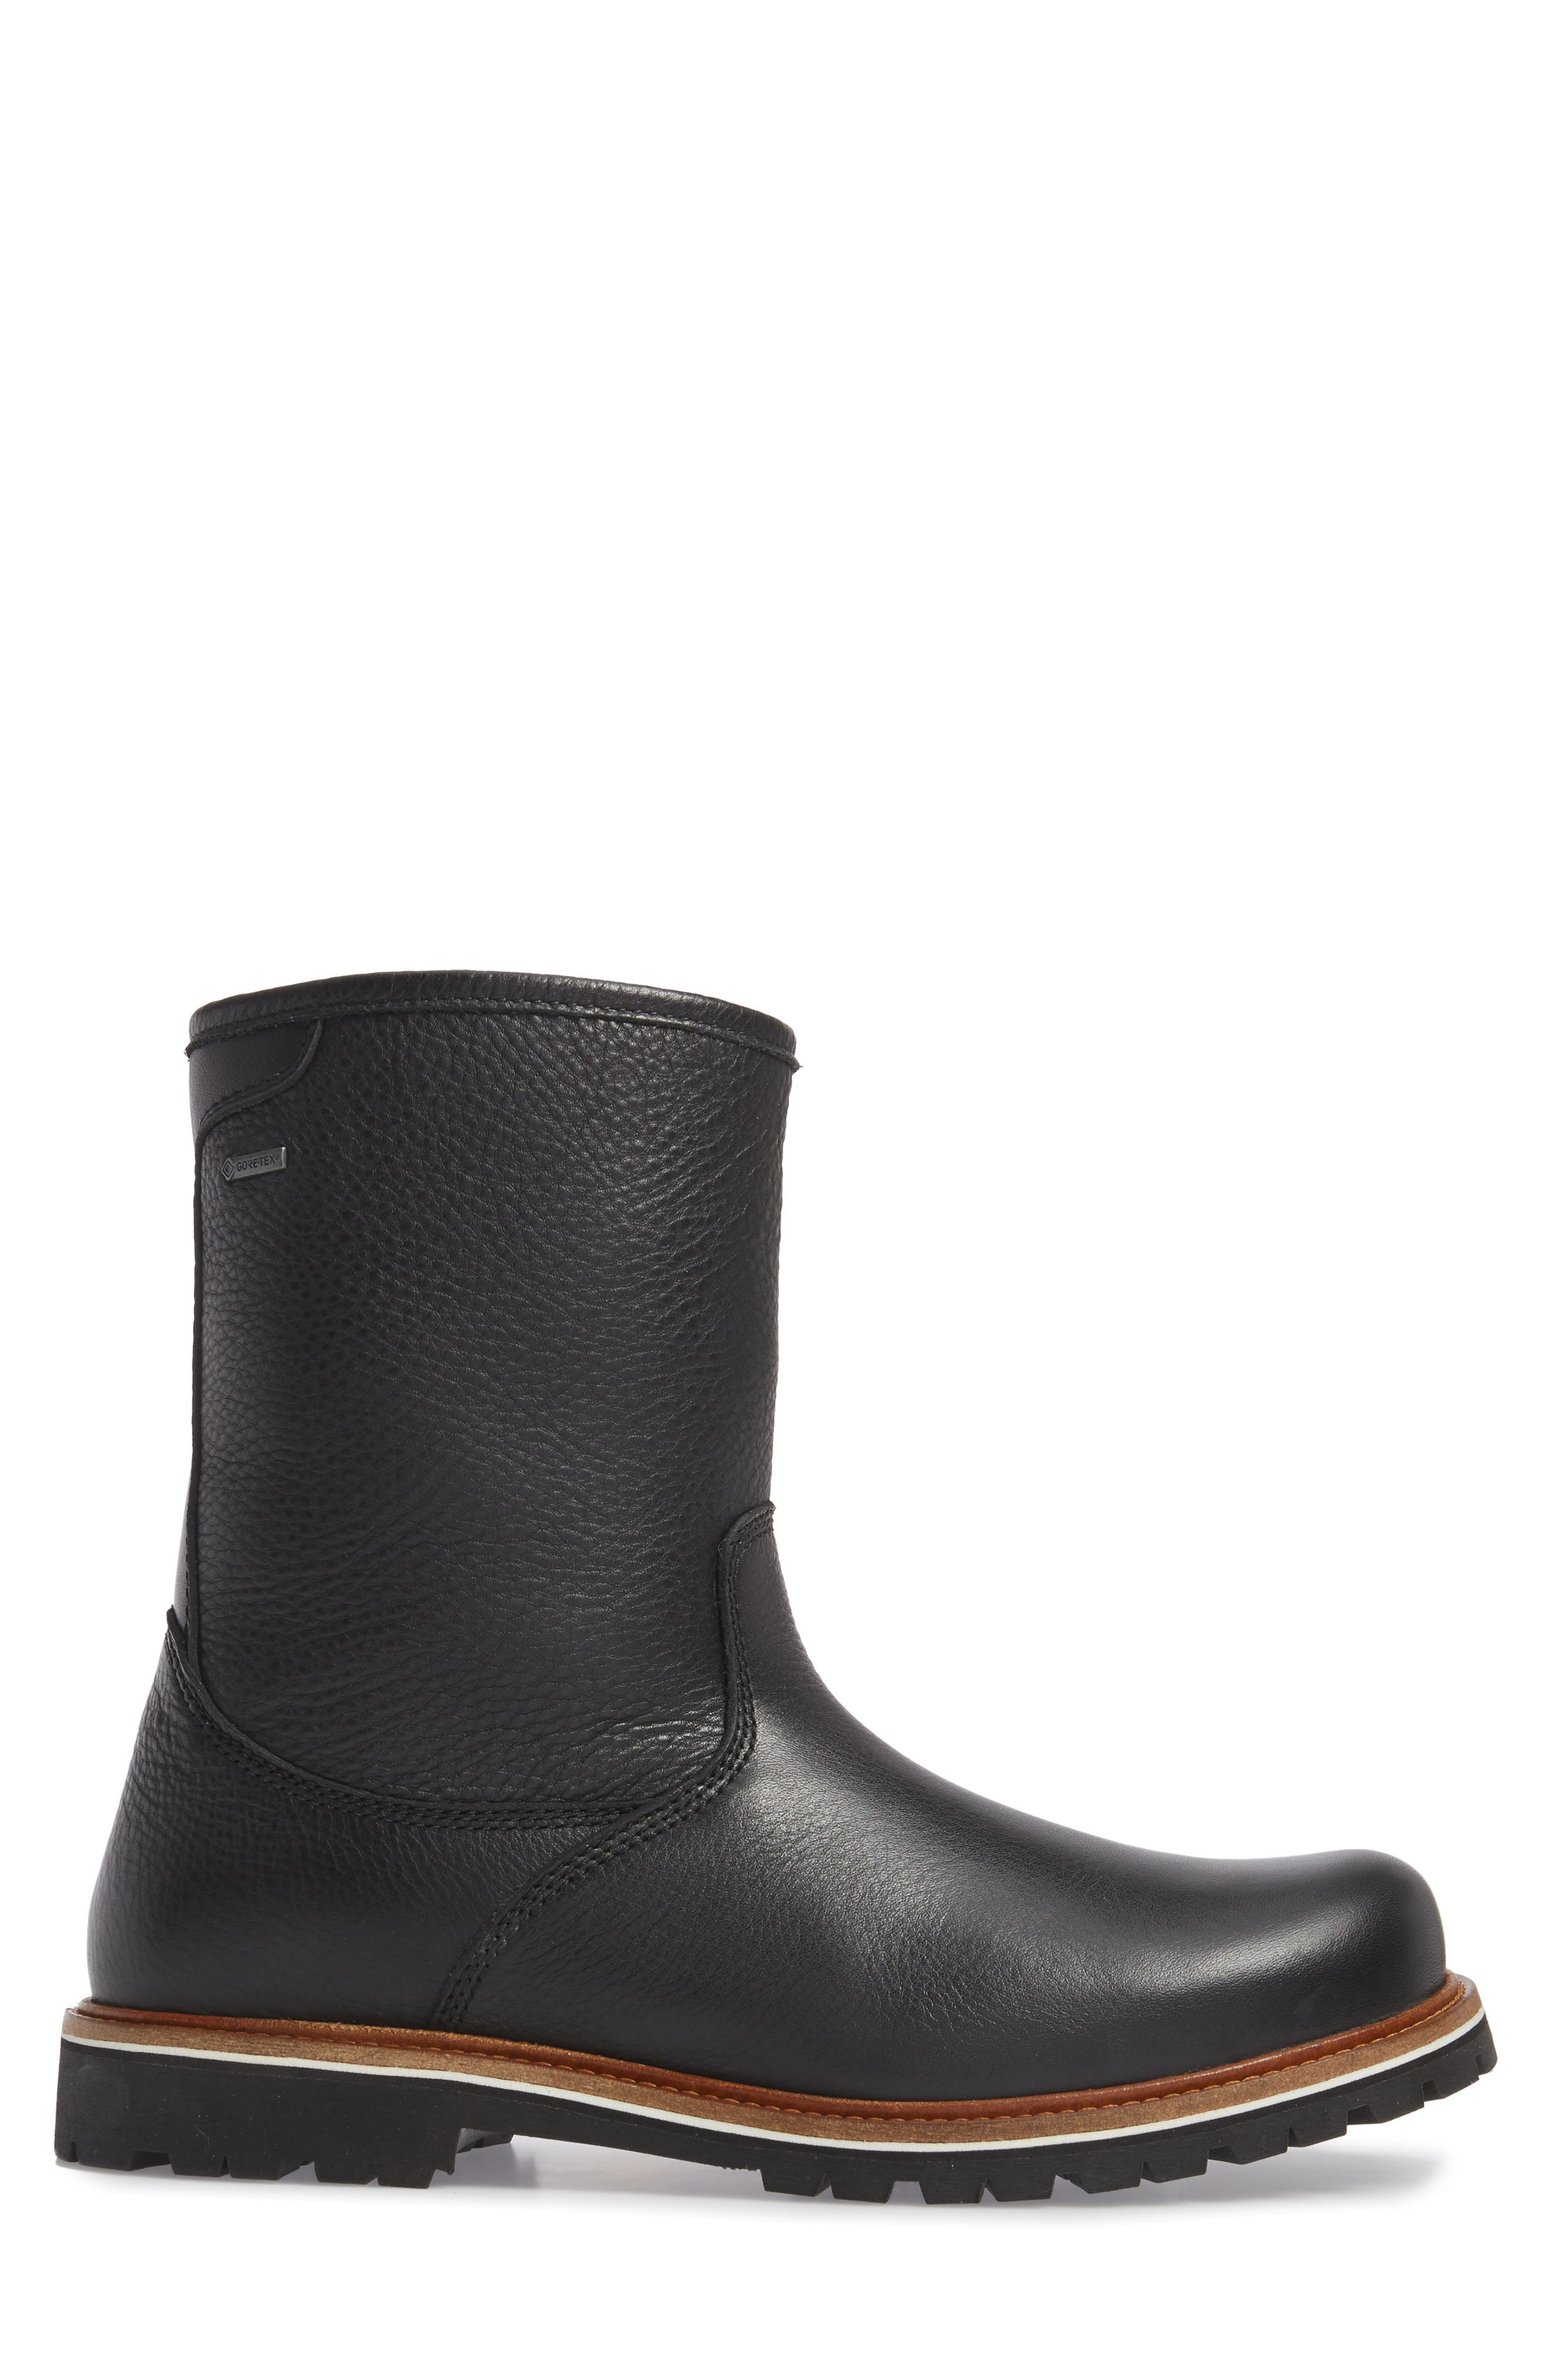 Snow Lodge Waterproof Gore-Tex<sup>®</sup> Genuine Shearling Lined Boot,                             Alternate thumbnail 3, color,                             Black Leather